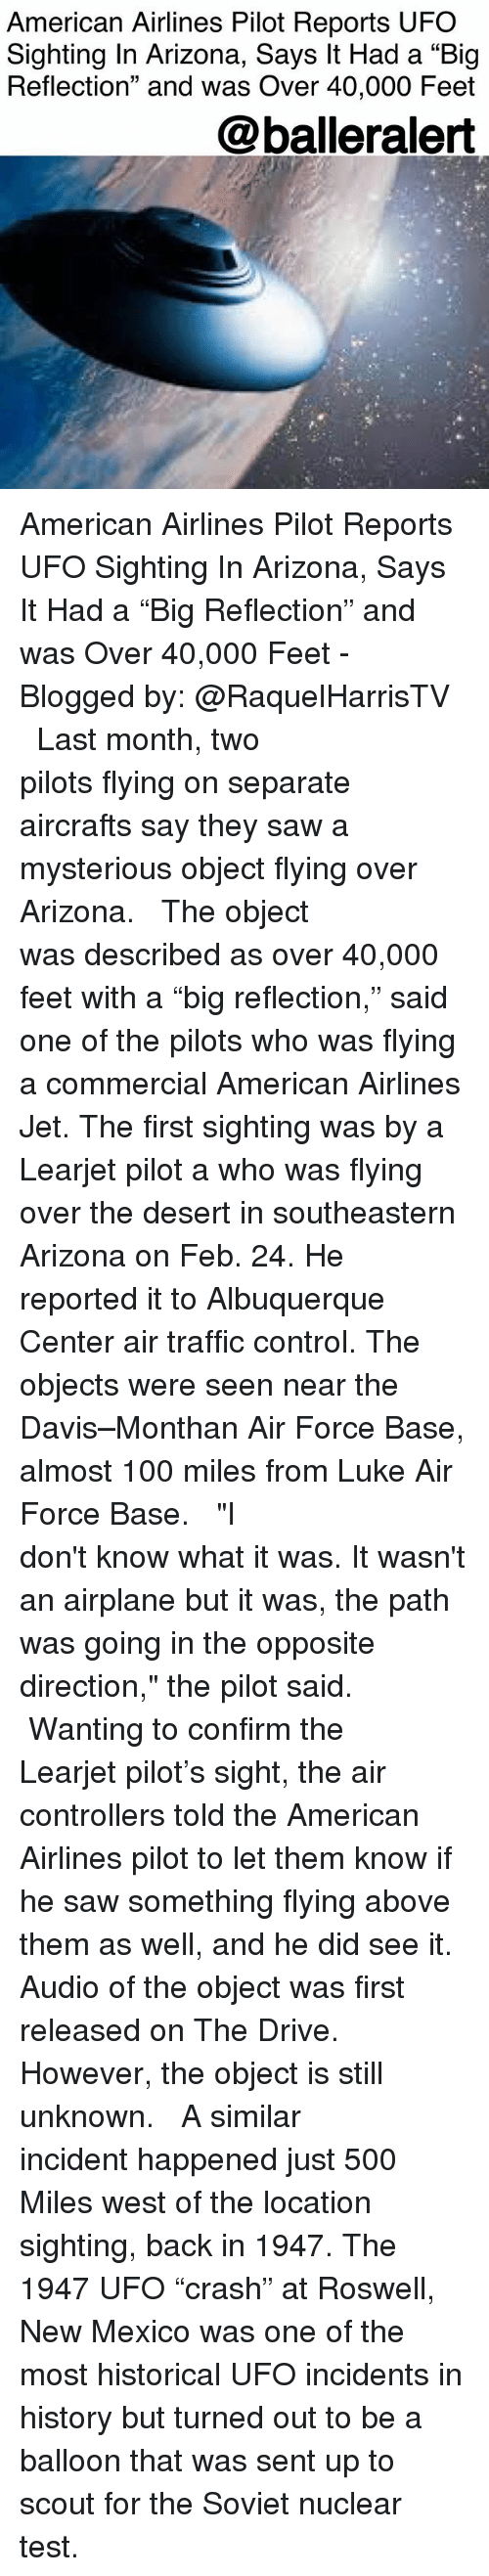 """balleralert: American Airlines Pilot Reports UFO  Sighting In Arizona, Says It Had a """"Big  Reflection"""" and was Over 40,000 Feet  @balleralert American Airlines Pilot Reports UFO Sighting In Arizona, Says It Had a """"Big Reflection"""" and was Over 40,000 Feet - Blogged by: @RaquelHarrisTV ⠀⠀⠀⠀⠀⠀⠀⠀⠀ ⠀⠀⠀⠀⠀⠀⠀⠀⠀ Last month, two pilots flying on separate aircrafts say they saw a mysterious object flying over Arizona. ⠀⠀⠀⠀⠀⠀⠀⠀⠀ ⠀⠀⠀⠀⠀⠀⠀⠀⠀ The object was described as over 40,000 feet with a """"big reflection,"""" said one of the pilots who was flying a commercial American Airlines Jet. The first sighting was by a Learjet pilot a who was flying over the desert in southeastern Arizona on Feb. 24. He reported it to Albuquerque Center air traffic control. The objects were seen near the Davis–Monthan Air Force Base, almost 100 miles from Luke Air Force Base. ⠀⠀⠀⠀⠀⠀⠀⠀⠀ ⠀⠀⠀⠀⠀⠀⠀⠀⠀ """"I don't know what it was. It wasn't an airplane but it was, the path was going in the opposite direction,"""" the pilot said. ⠀⠀⠀⠀⠀⠀⠀⠀⠀ ⠀⠀⠀⠀⠀⠀⠀⠀⠀ Wanting to confirm the Learjet pilot's sight, the air controllers told the American Airlines pilot to let them know if he saw something flying above them as well, and he did see it. Audio of the object was first released on The Drive. However, the object is still unknown. ⠀⠀⠀⠀⠀⠀⠀⠀⠀ ⠀⠀⠀⠀⠀⠀⠀⠀⠀ A similar incident happened just 500 Miles west of the location sighting, back in 1947. The 1947 UFO """"crash"""" at Roswell, New Mexico was one of the most historical UFO incidents in history but turned out to be a balloon that was sent up to scout for the Soviet nuclear test."""